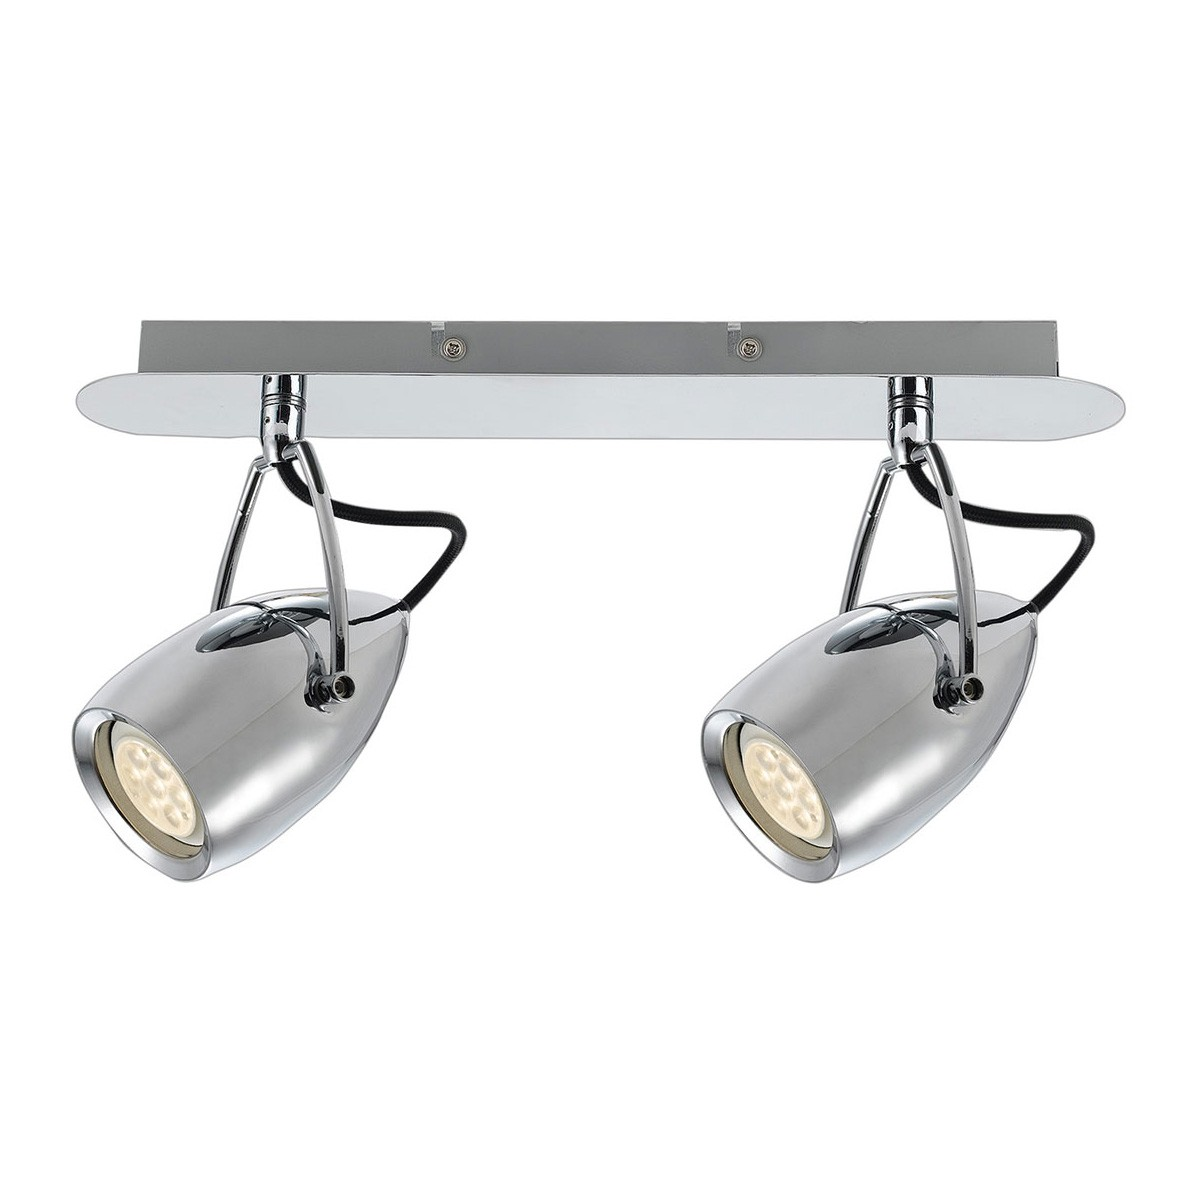 Tolosa LED Spotlight, 2 Light, Chrome